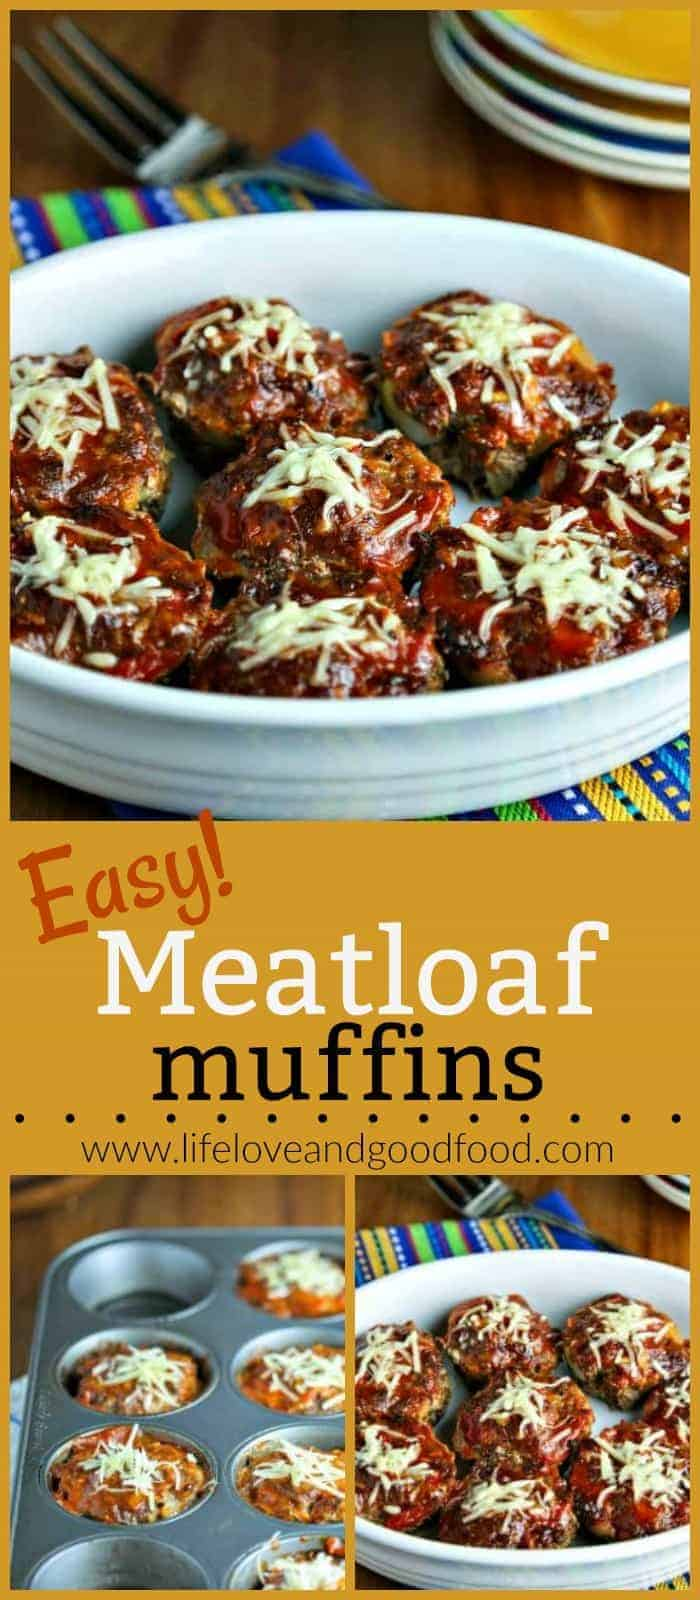 Down-home comfort food gets a healthy makeover in these lean Easy Meatloaf Muffins #dinner #easyrecipe #meatloaf